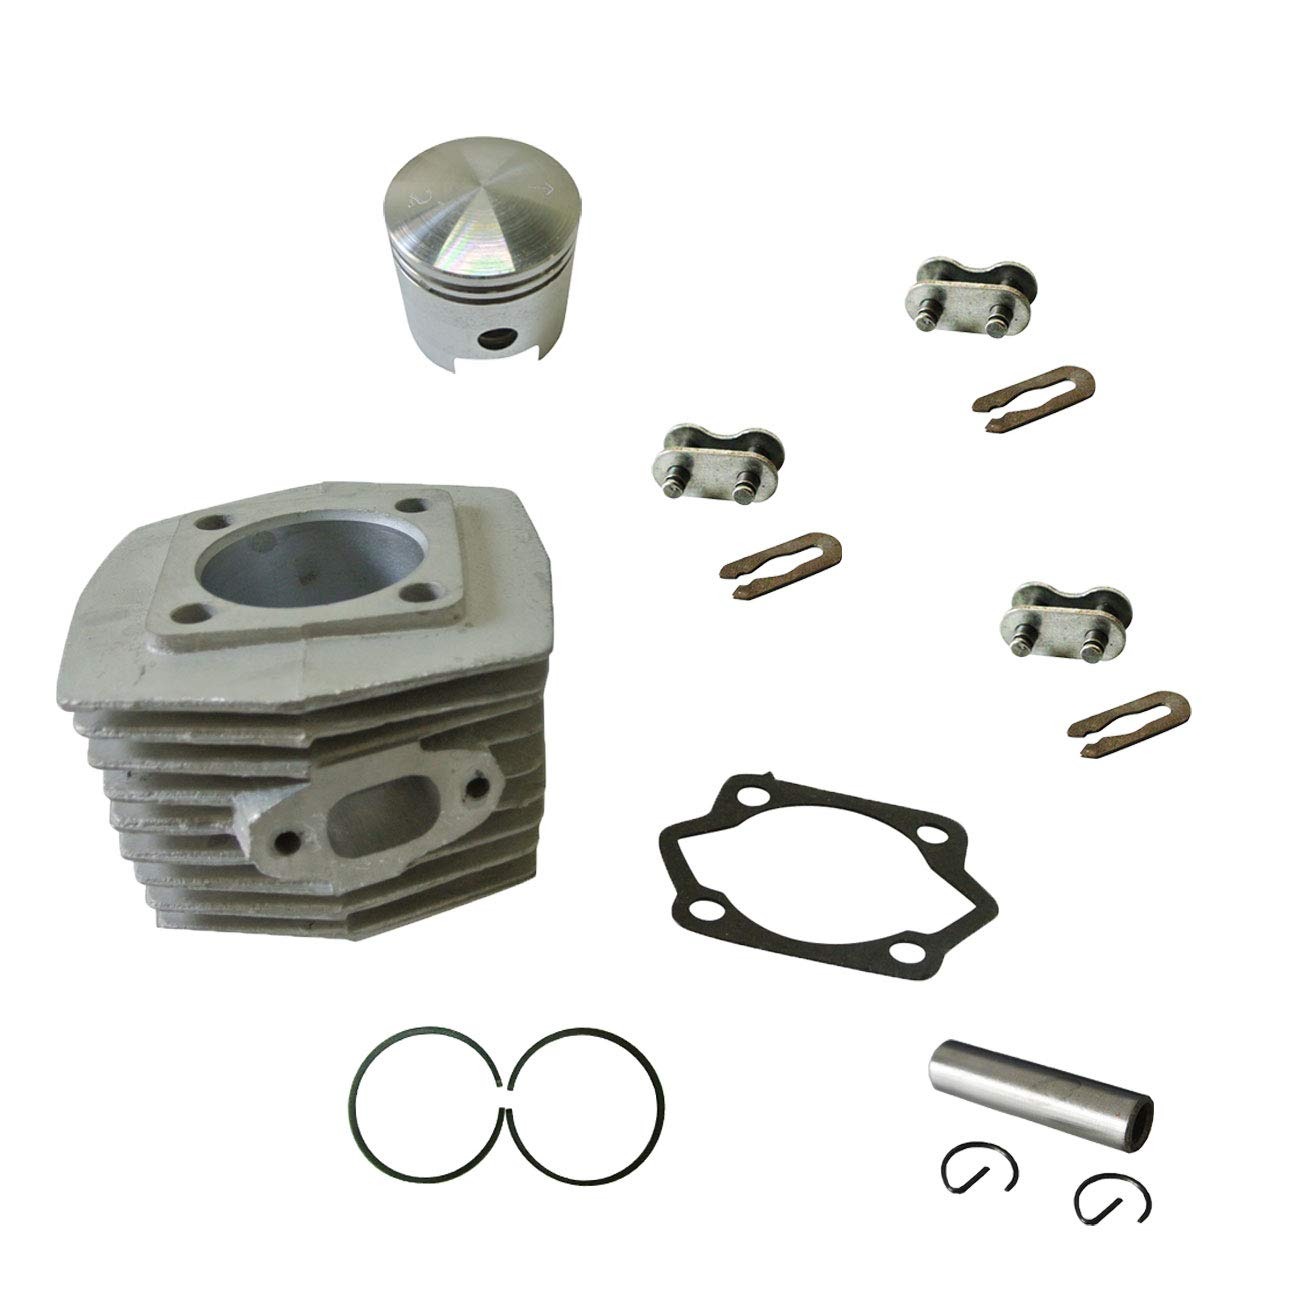 HGC Cylinder/&Piston/&Piston Ring/&Pin/&415 Chain Master Link For 66cc 80cc 2 Stroke Engine Motorized Bicycle Bike